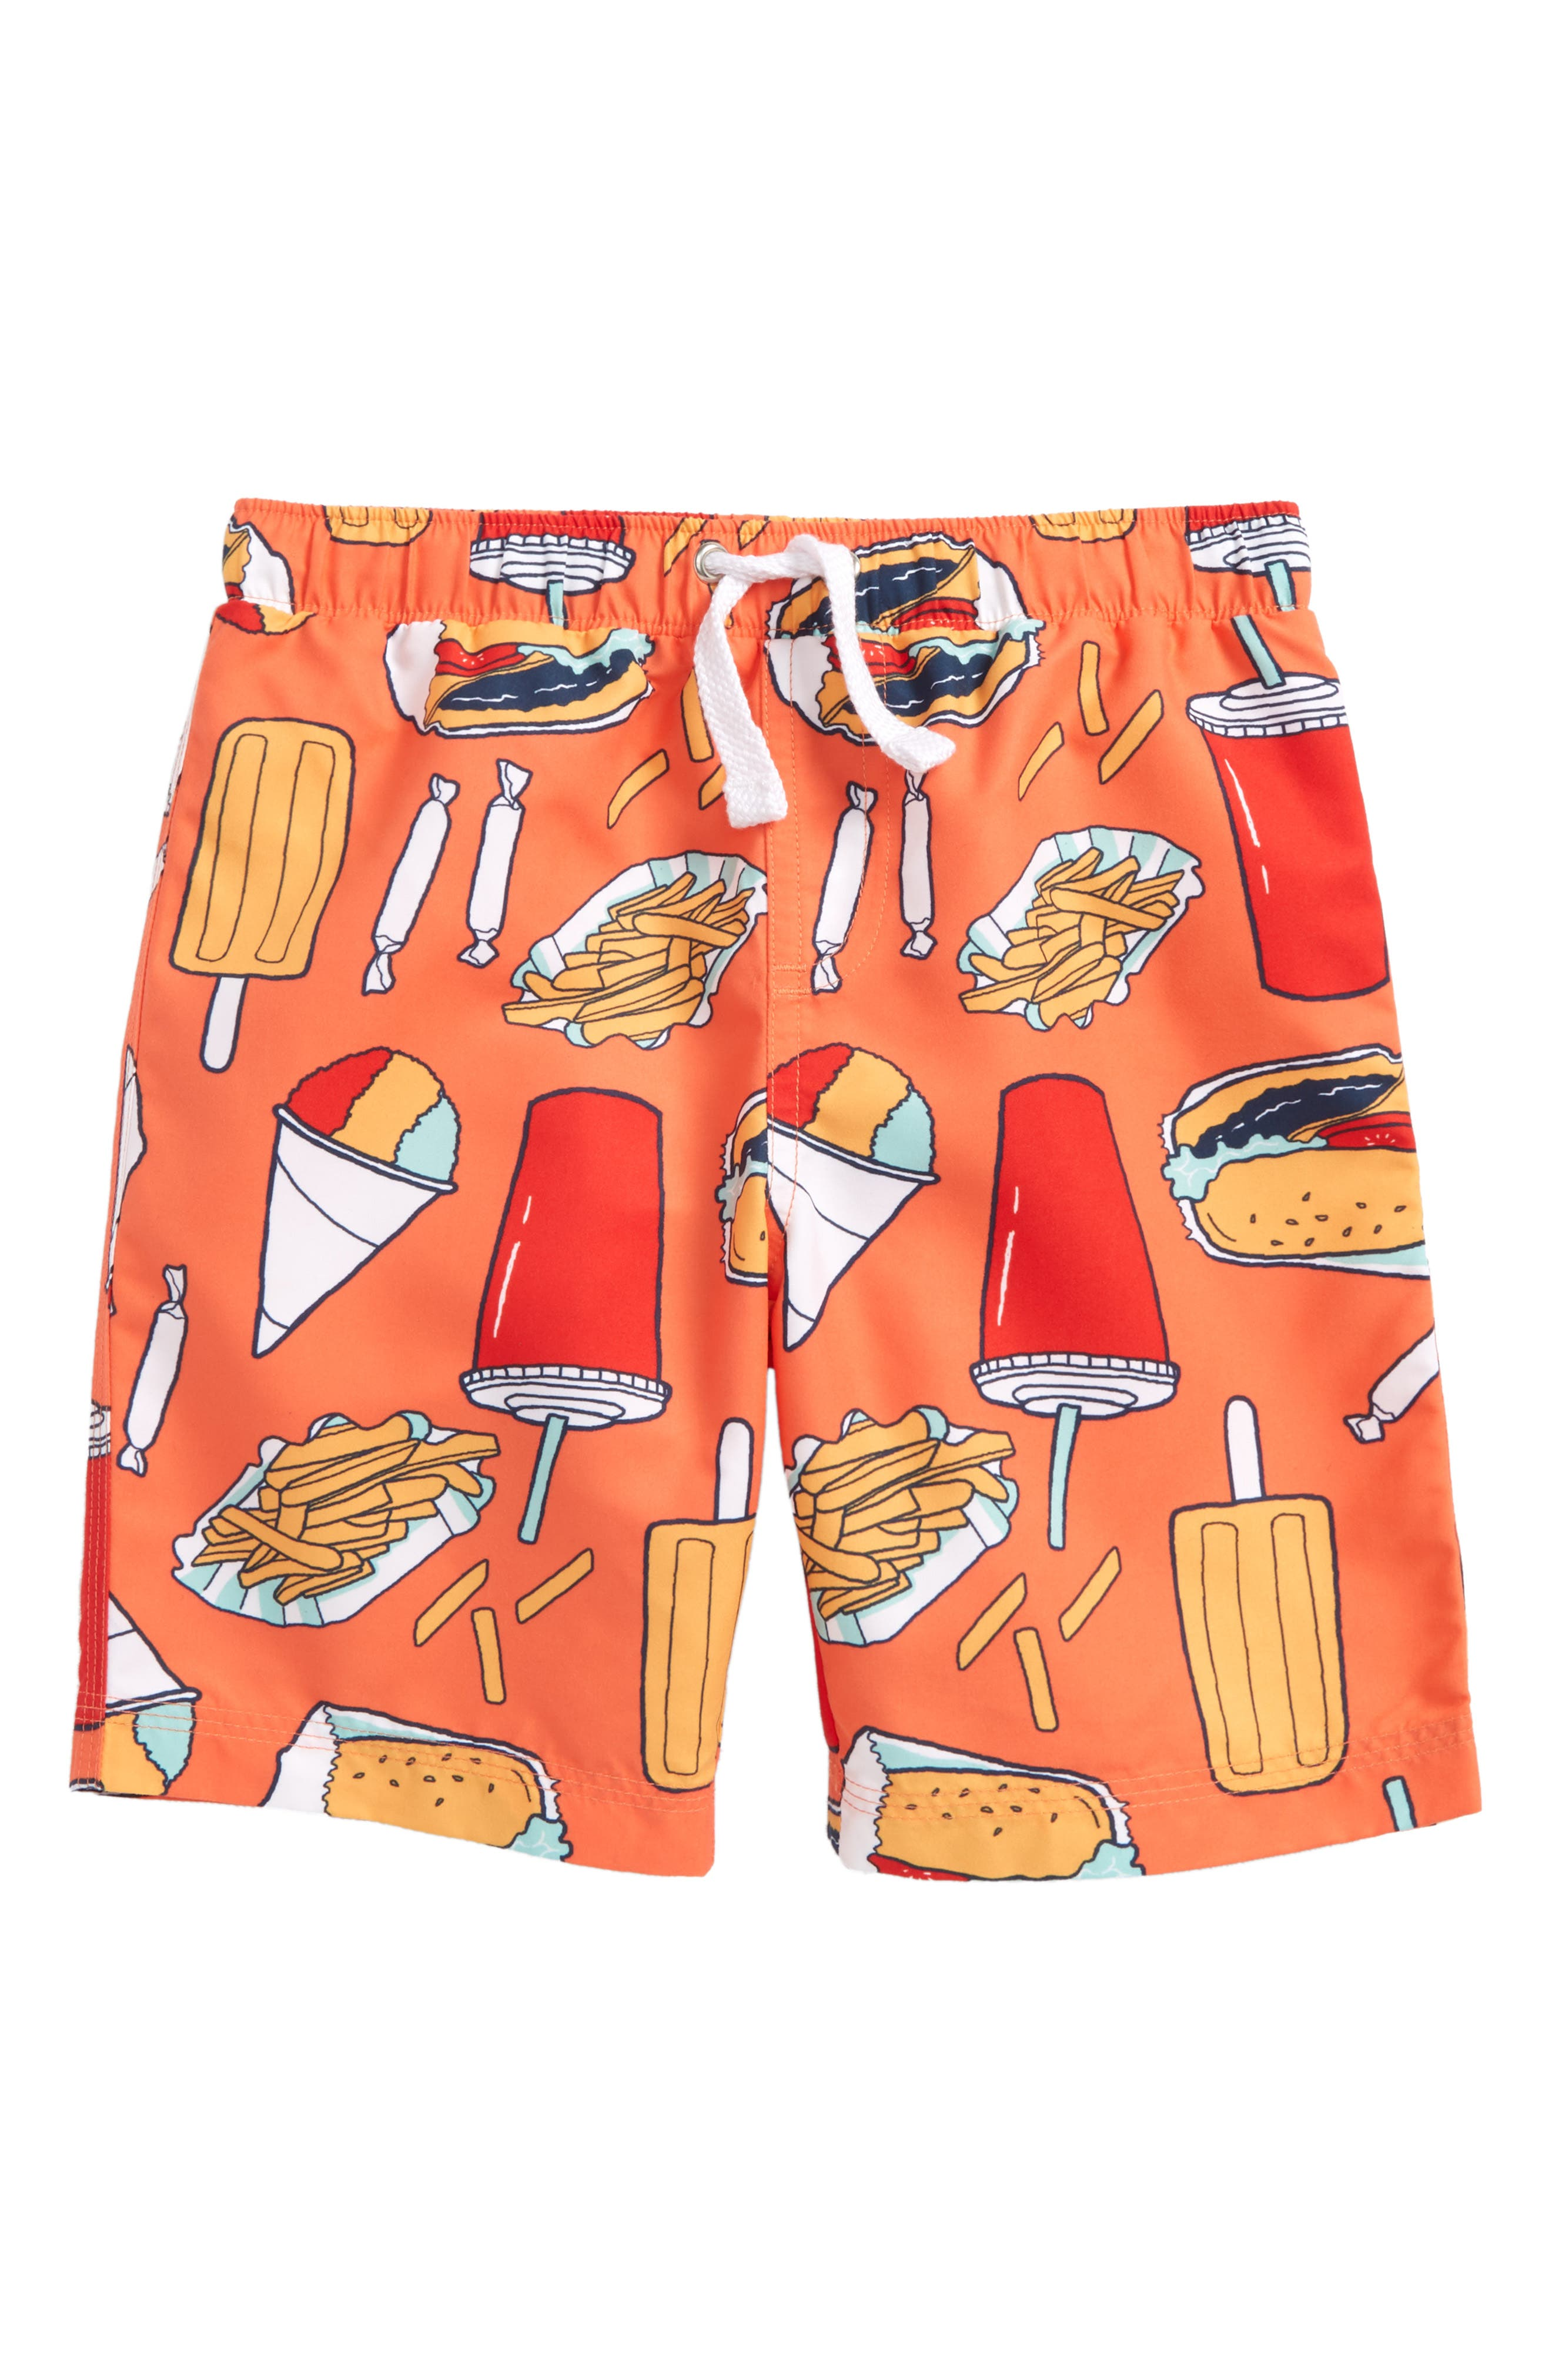 Tucker + Tate 'Sand 'N My Trunks' Swim Trunks (Toddler Boys & Little Boys)